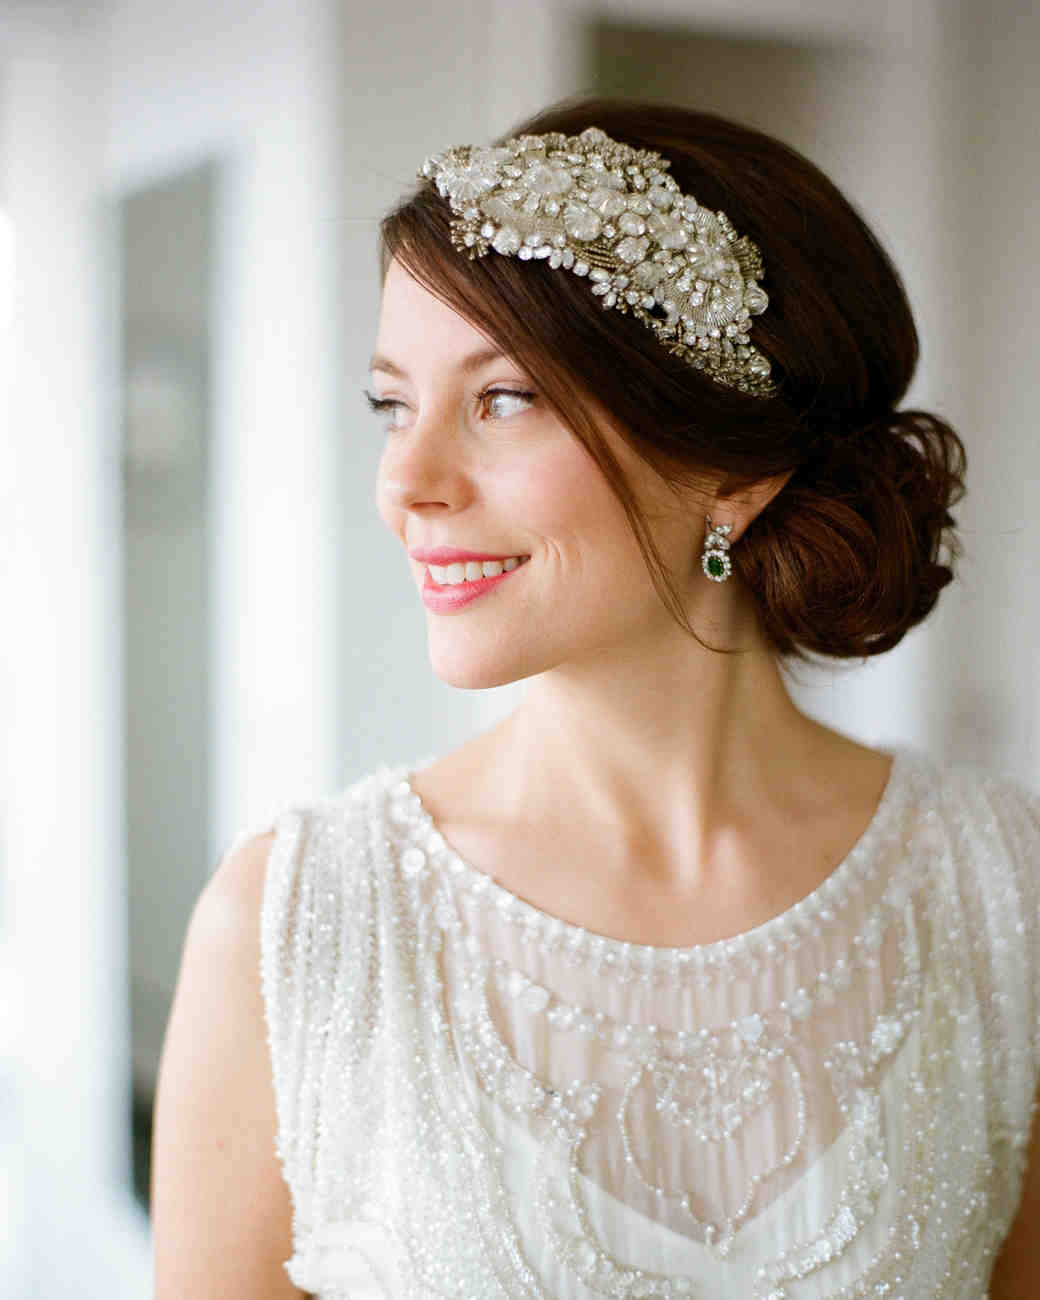 Wedding Styles: 29 Cool Wedding Hairstyles For The Modern Bride